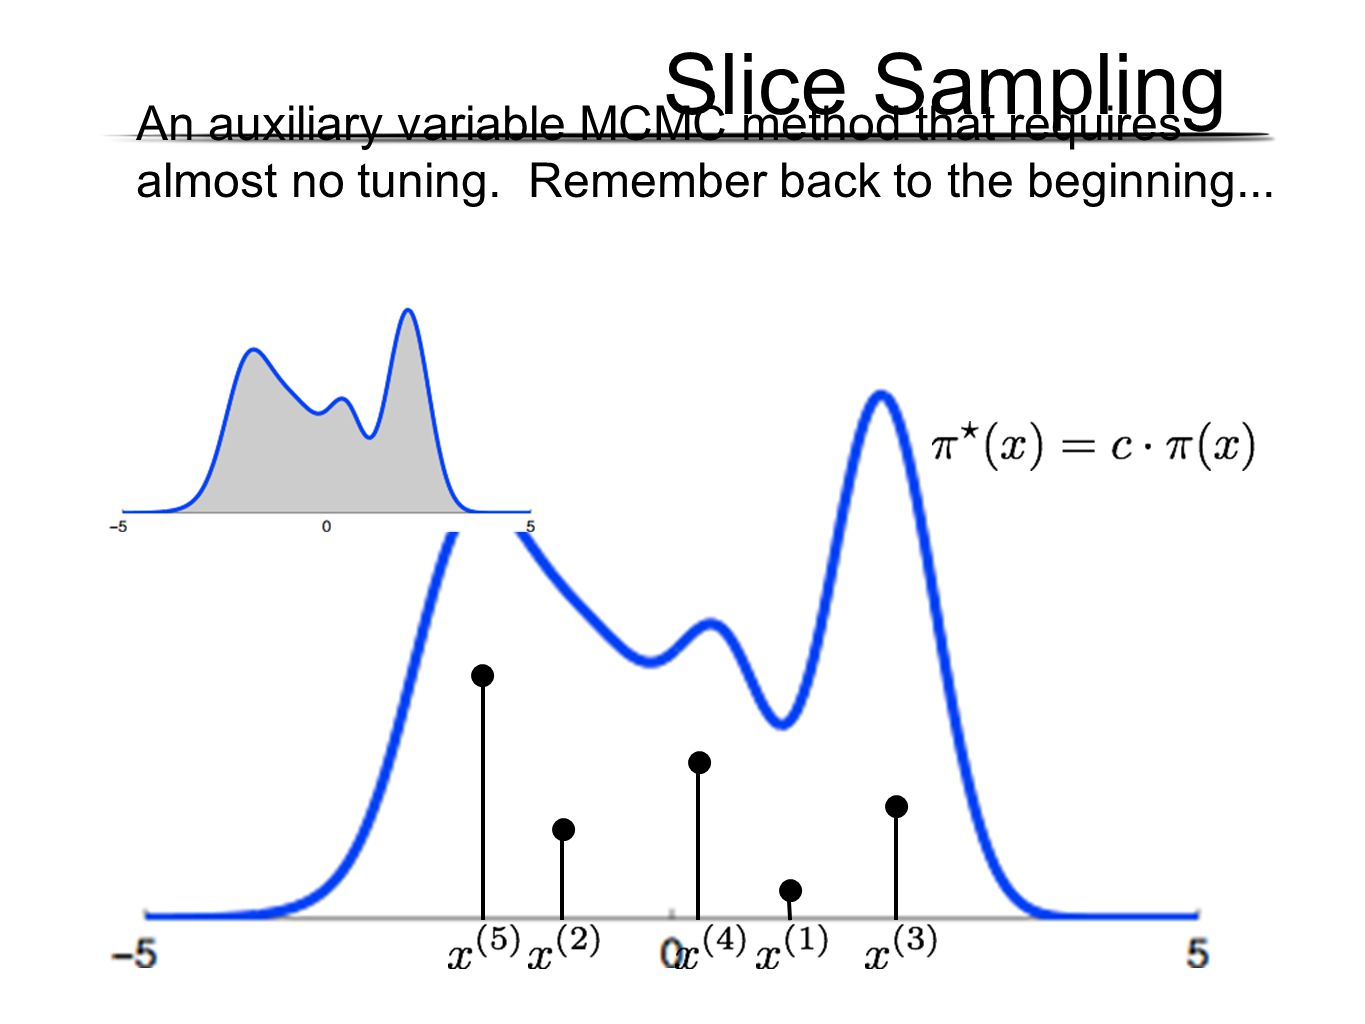 Slice Sampling An auxiliary variable MCMC method that requires almost no tuning.